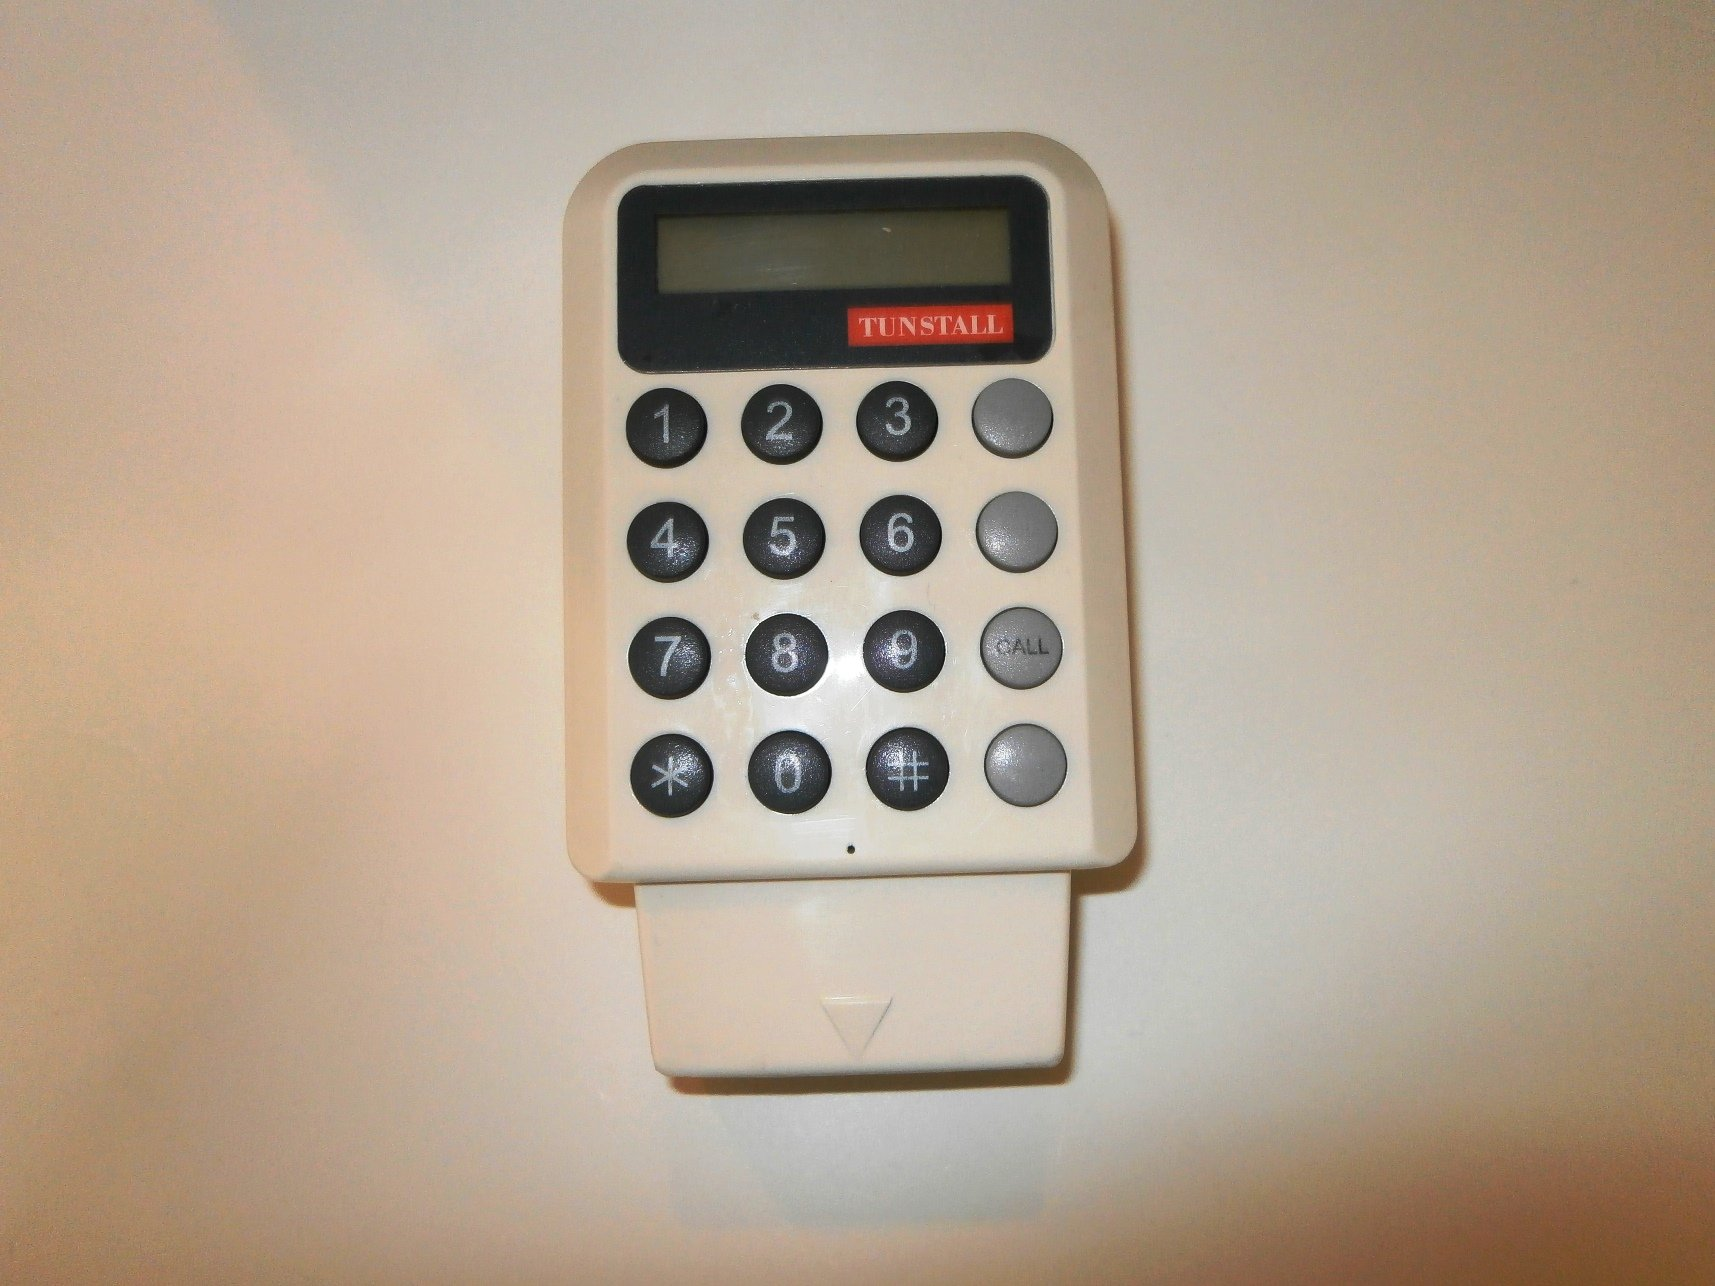 Design Your Own Home Free Software Handsets Warden Call Spare Parts Ltd